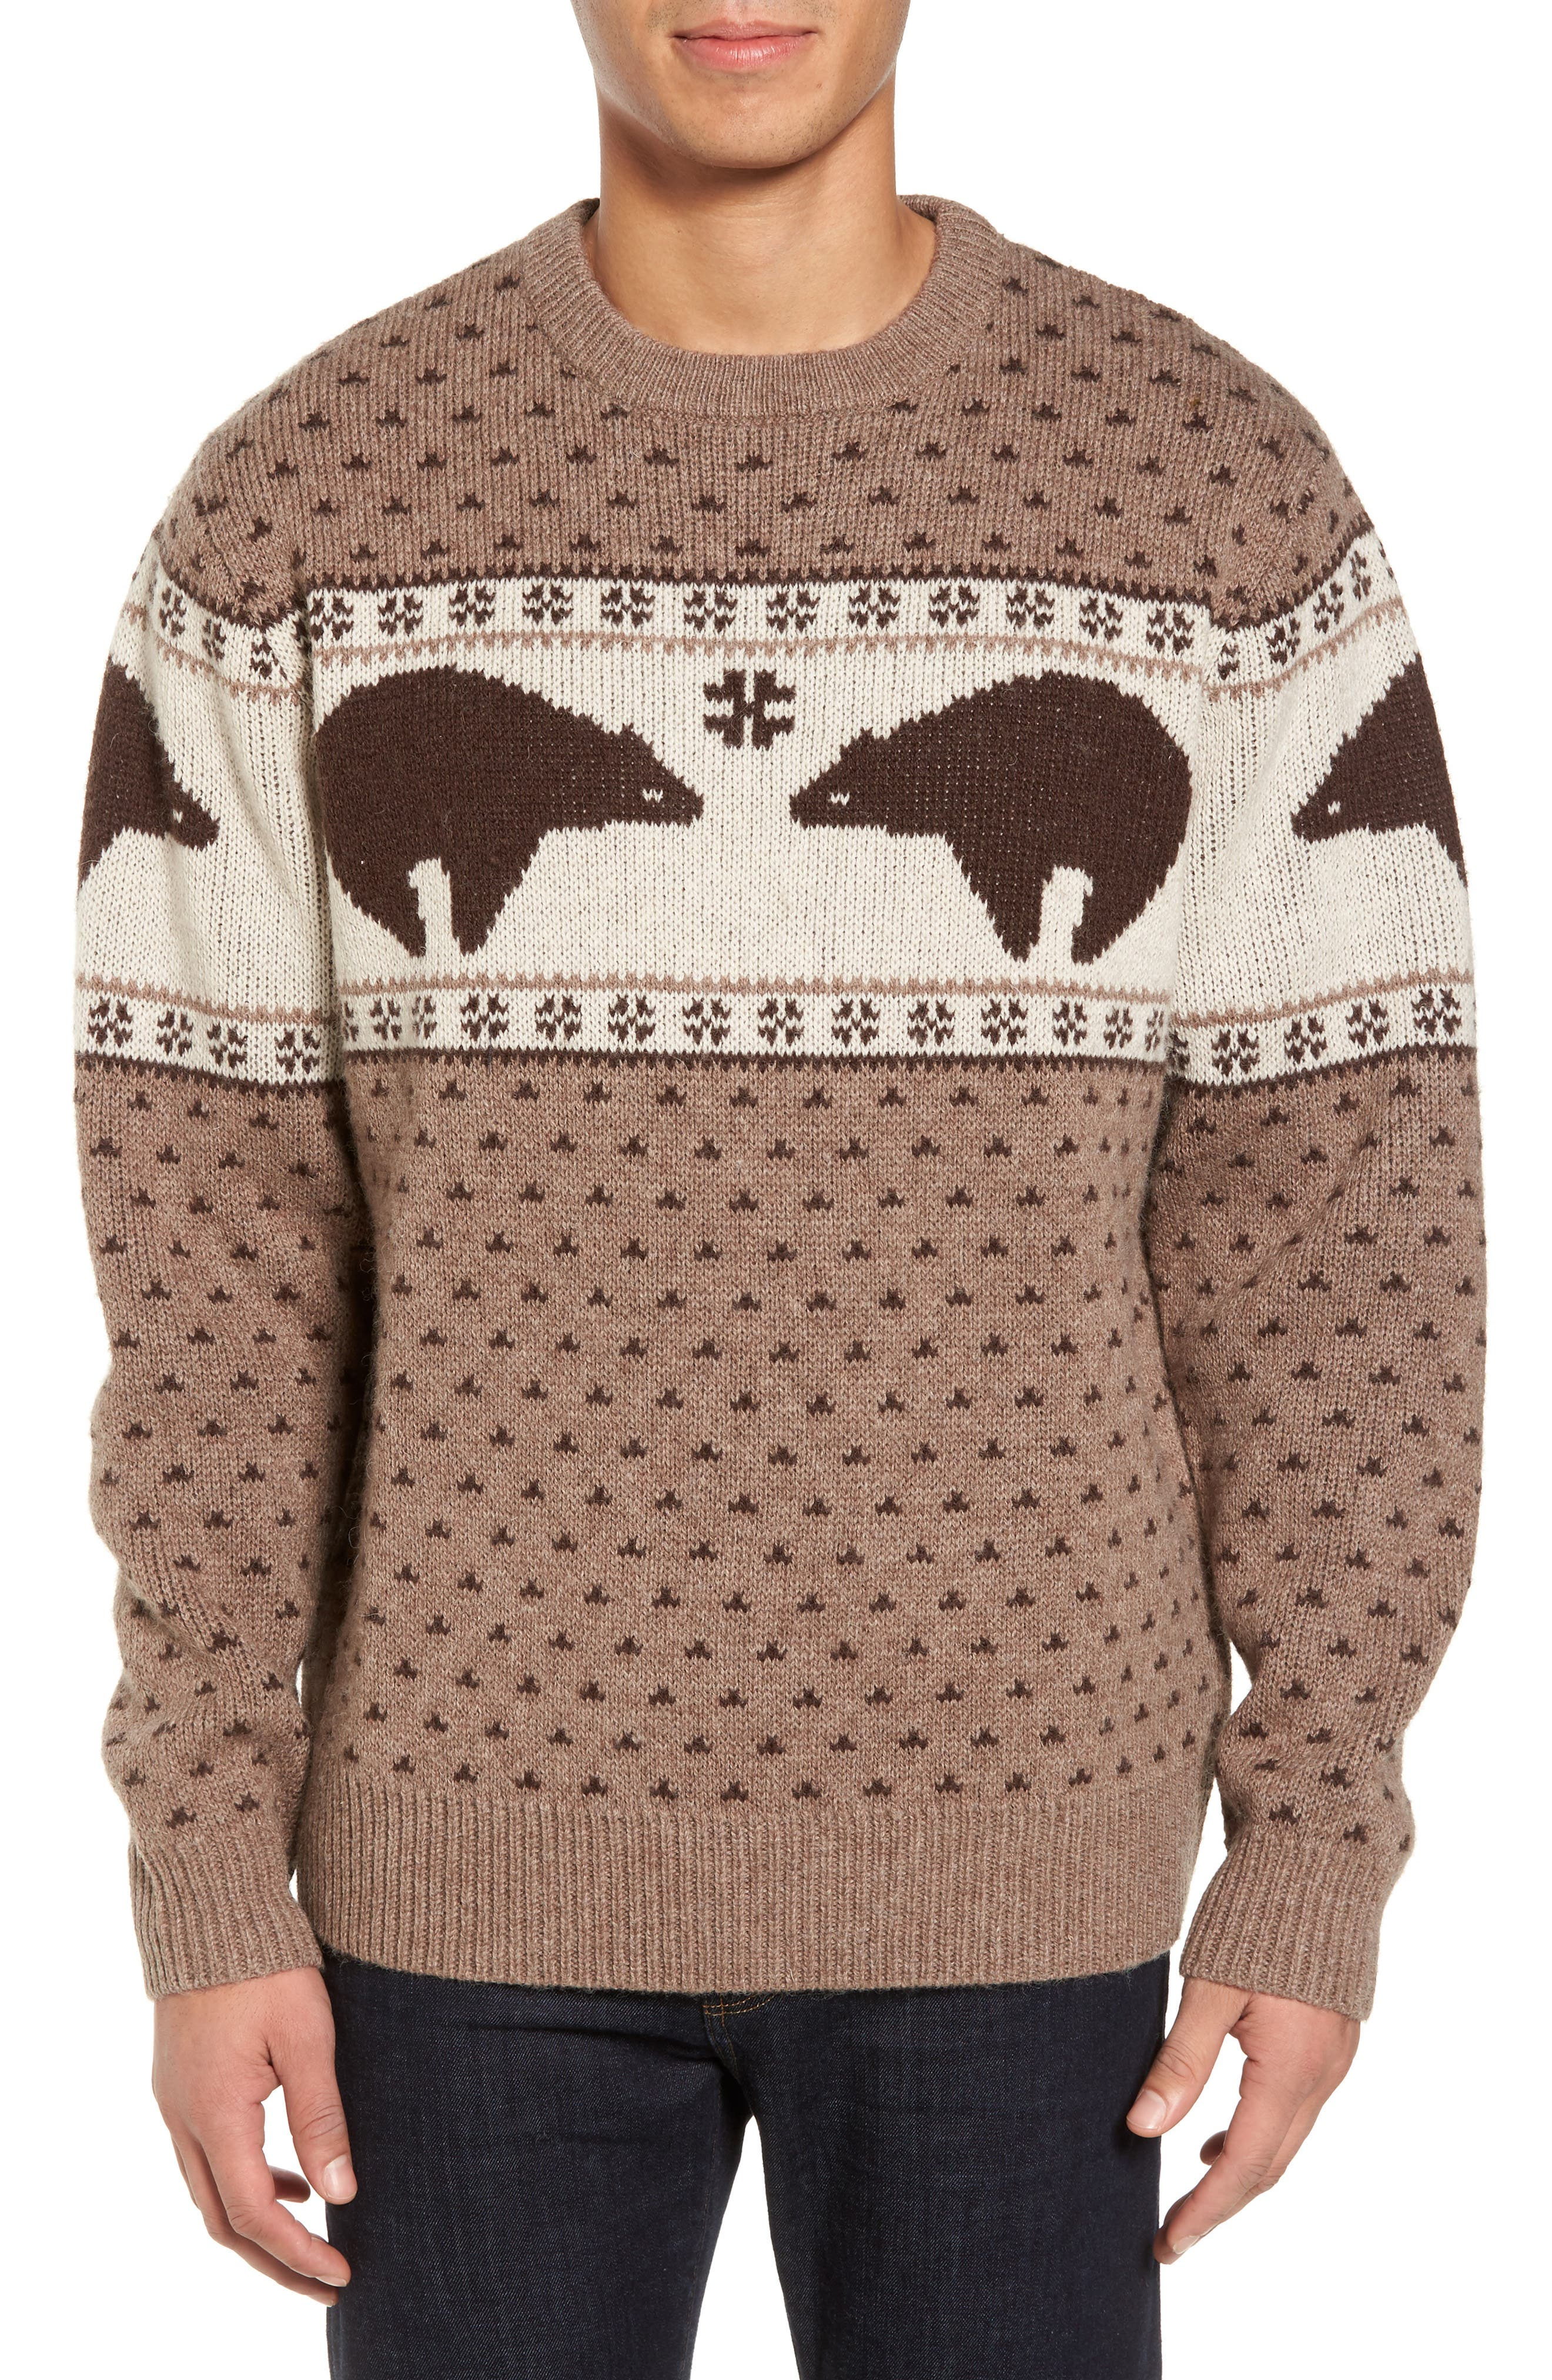 Bear Sweater,                             Main thumbnail 1, color,                             250